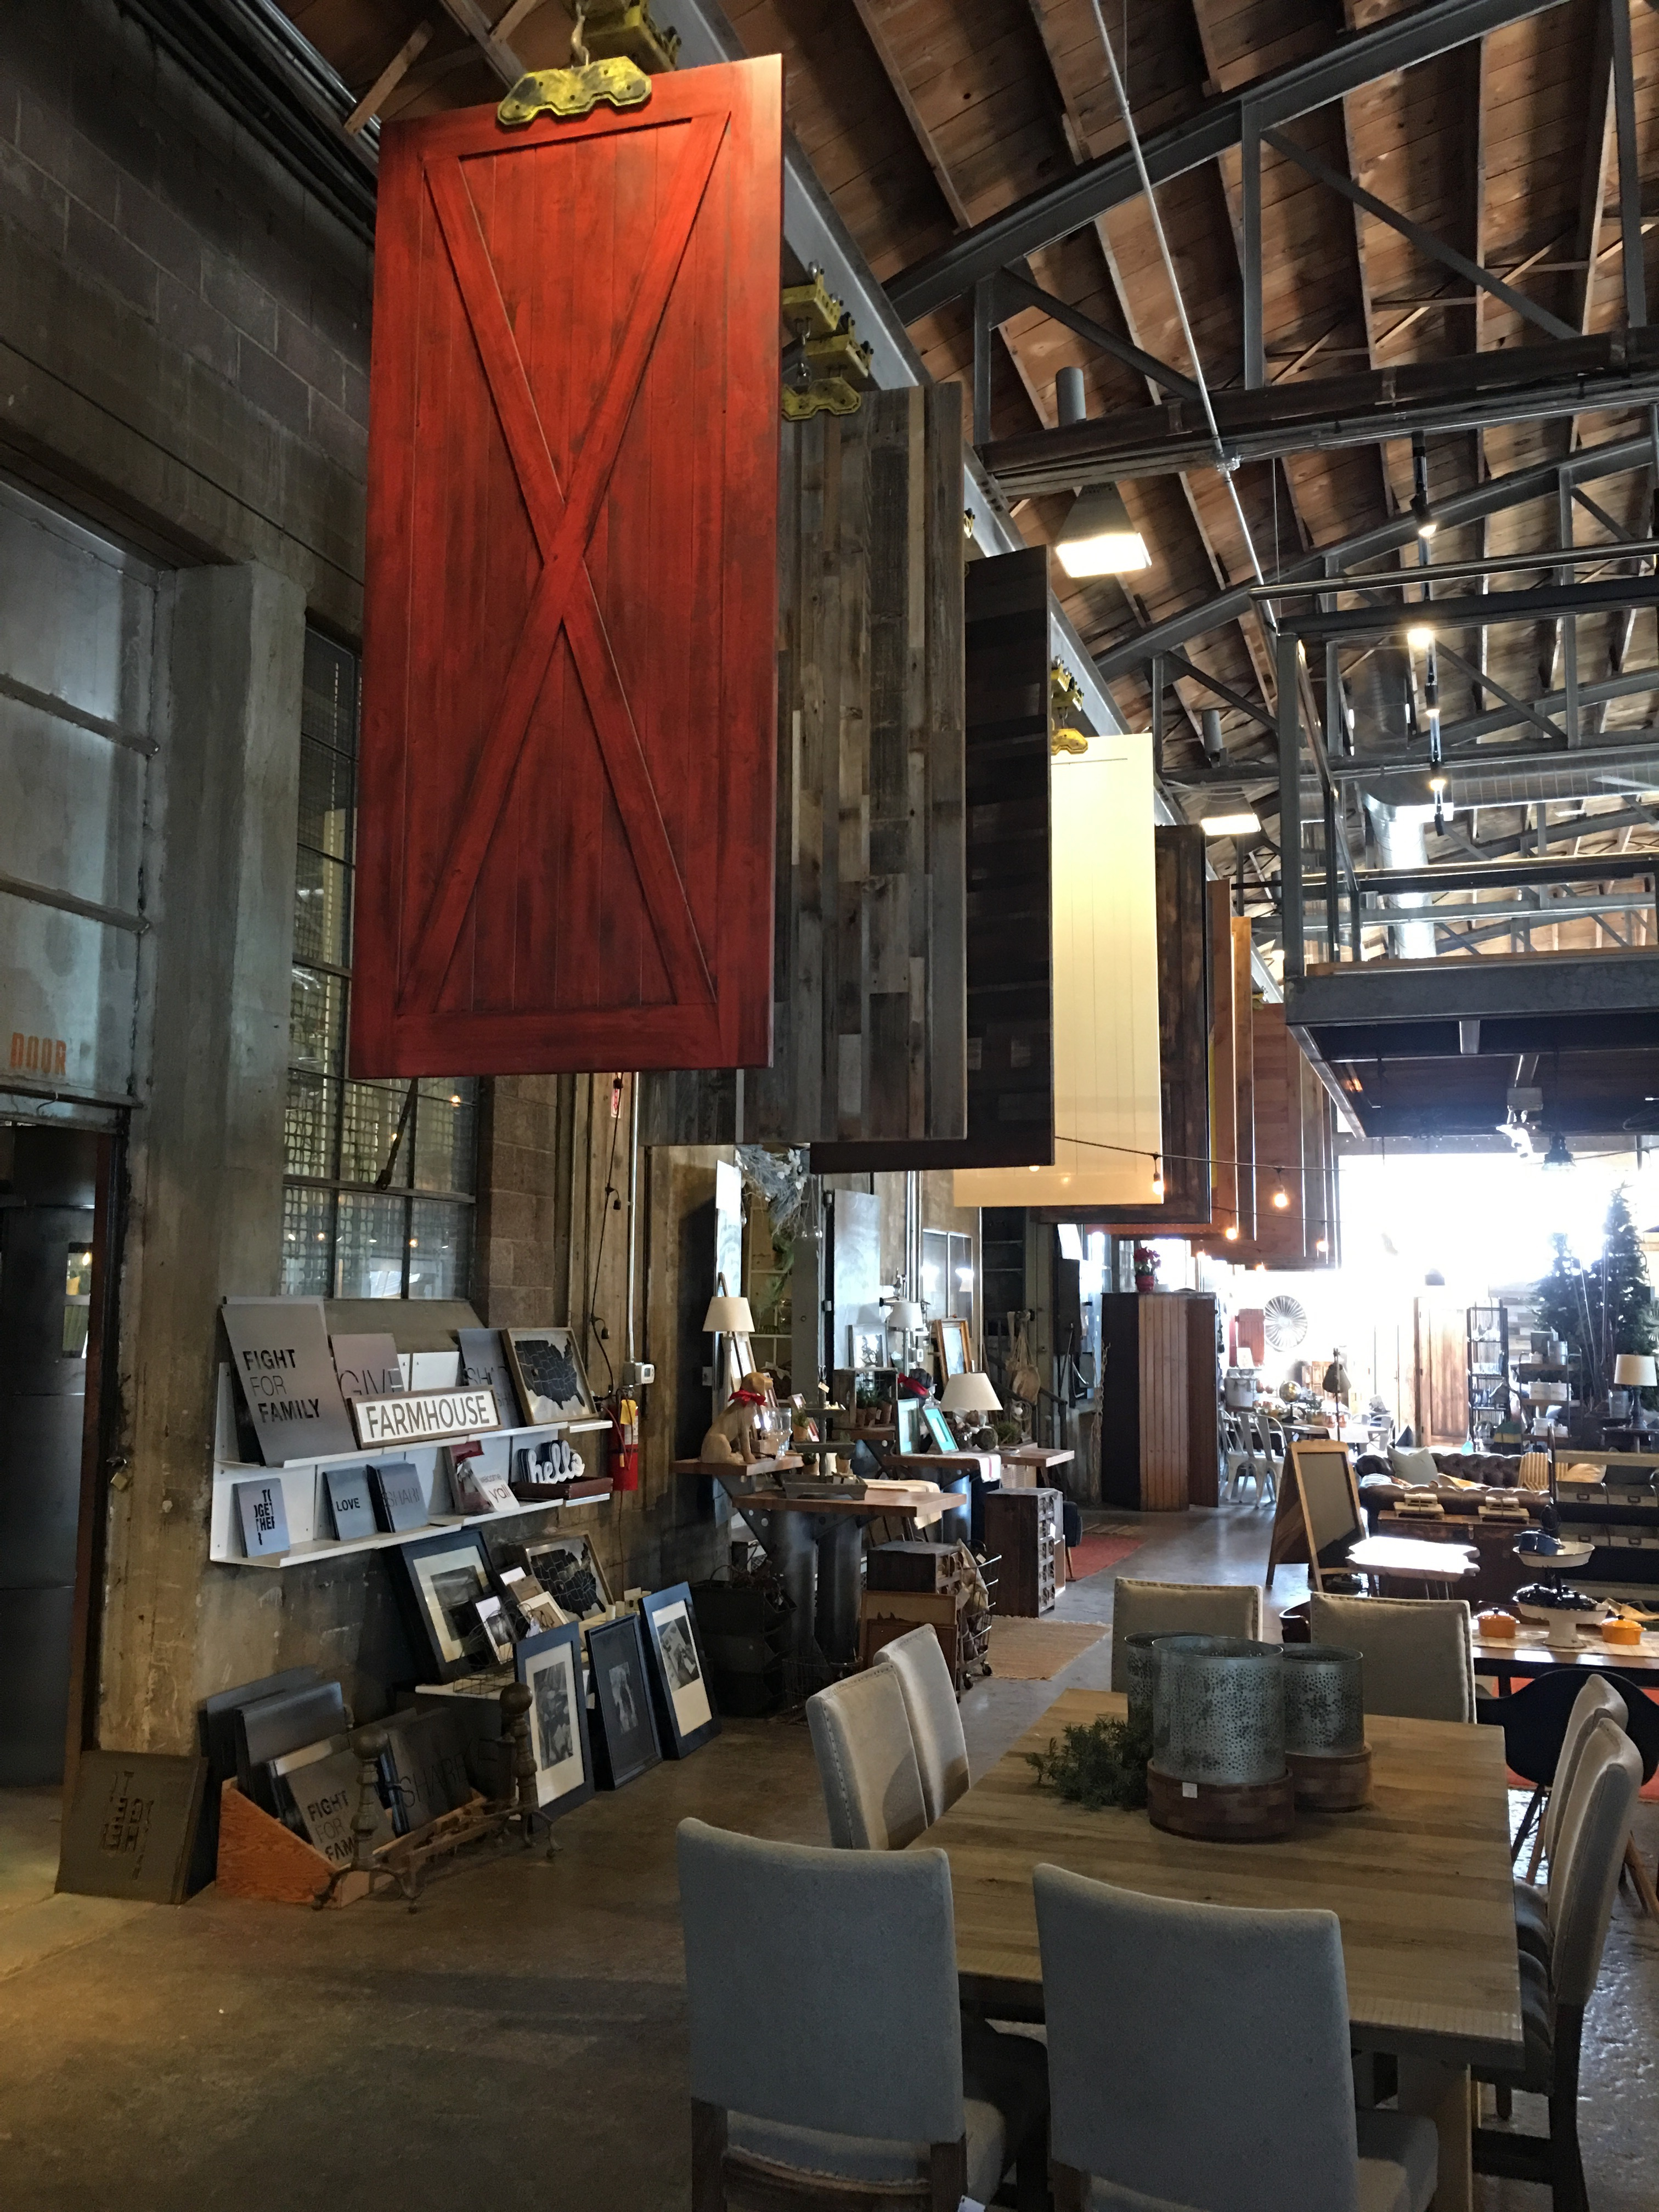 For true lifestyle inspiration and home decor, visit the Rustica Hardware Showroom!